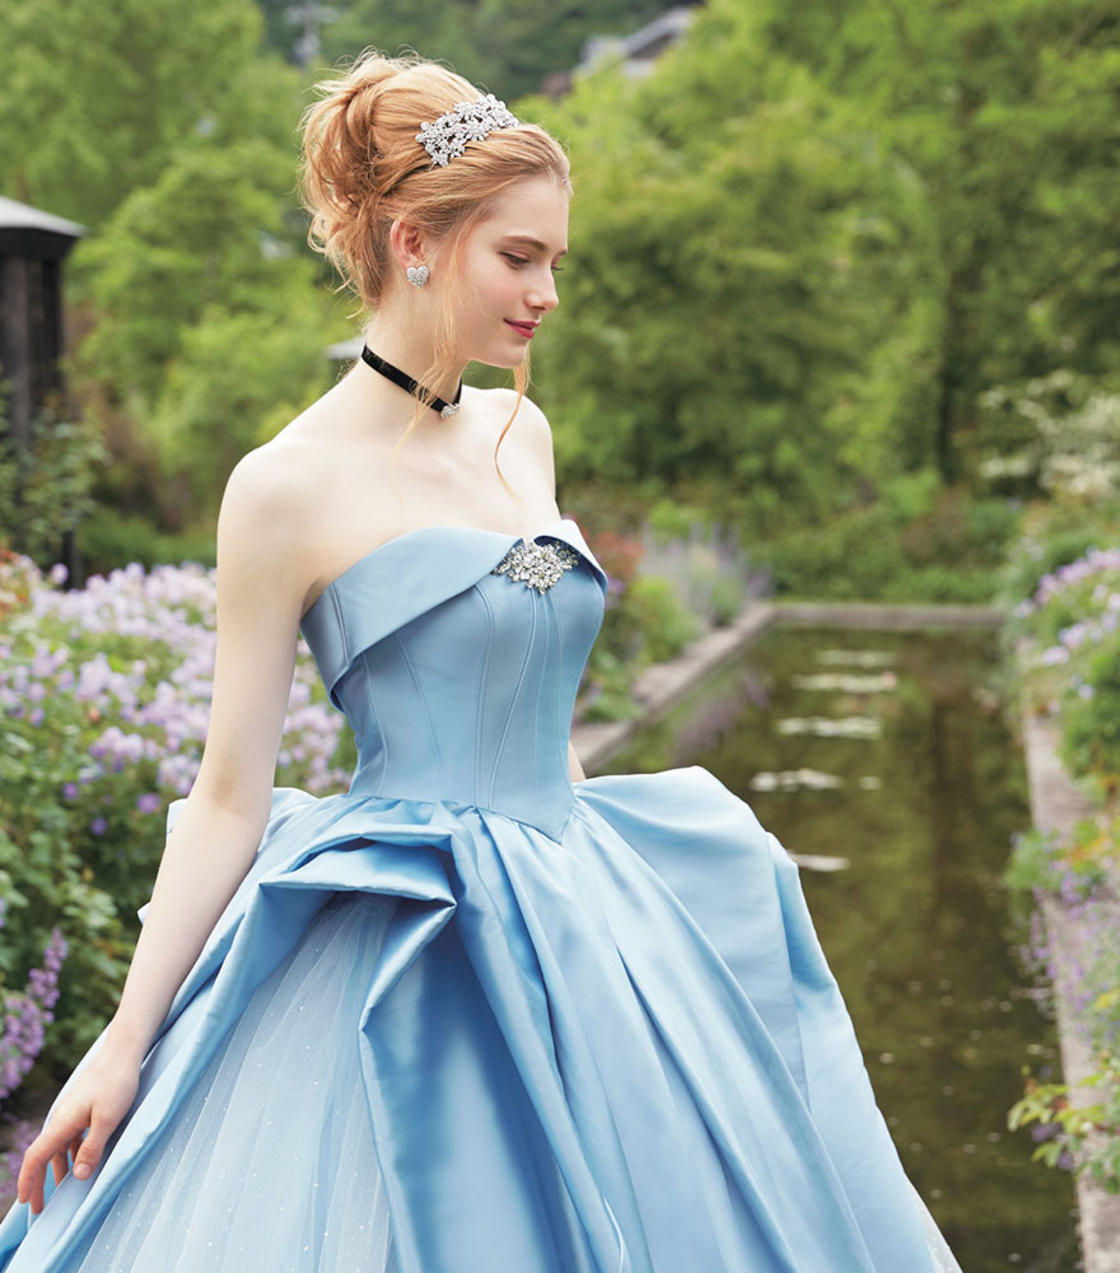 Disney Japan launches its wedding dresses inspired by the famous princesses